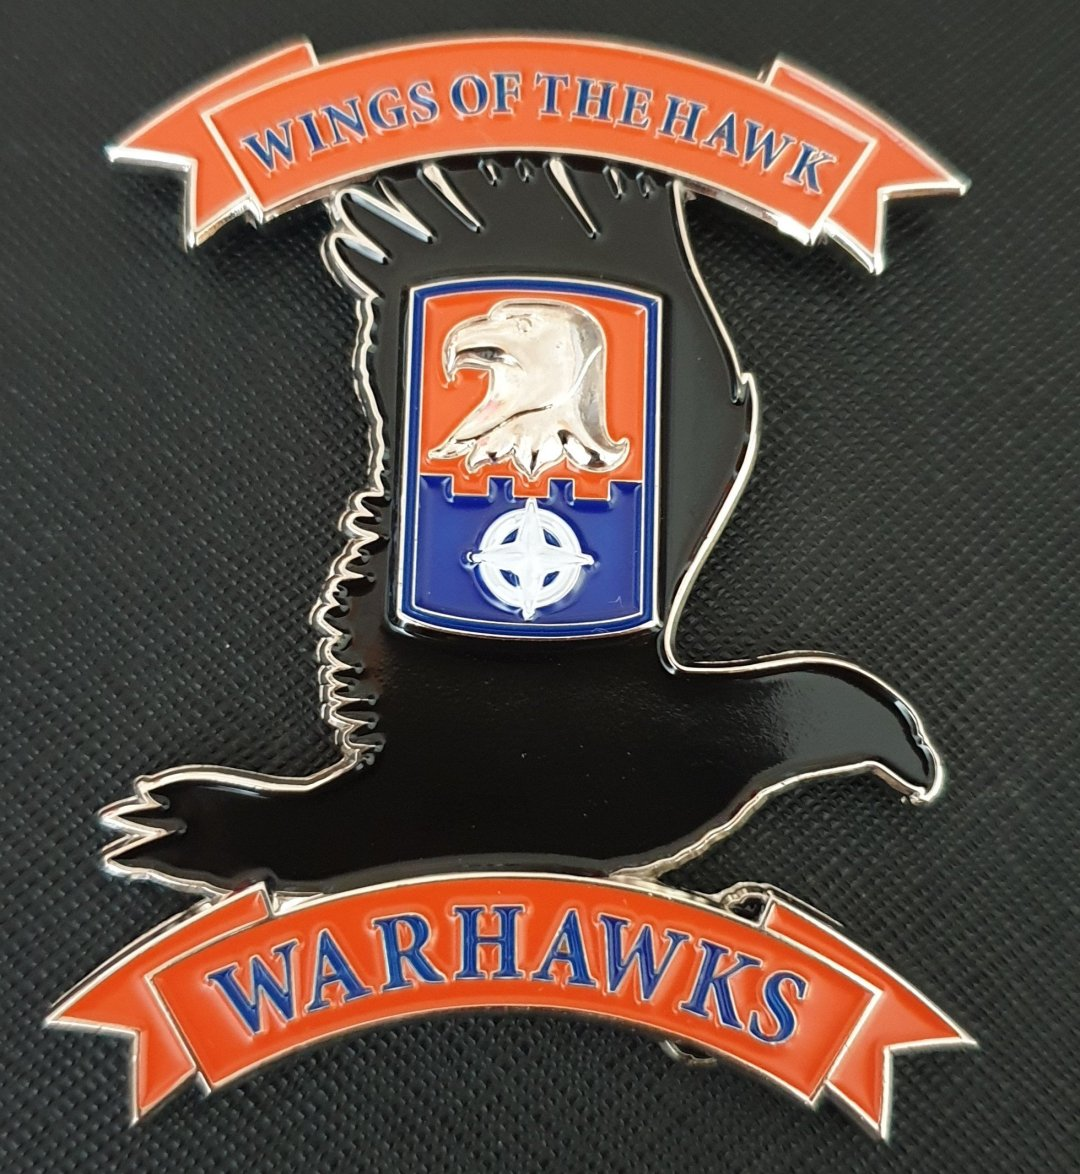 US Army TF WARHAWK 244th ECAB 244th Expeditionary Combat Aviation Brigade OIR 2019 Deployment Command Team Coin